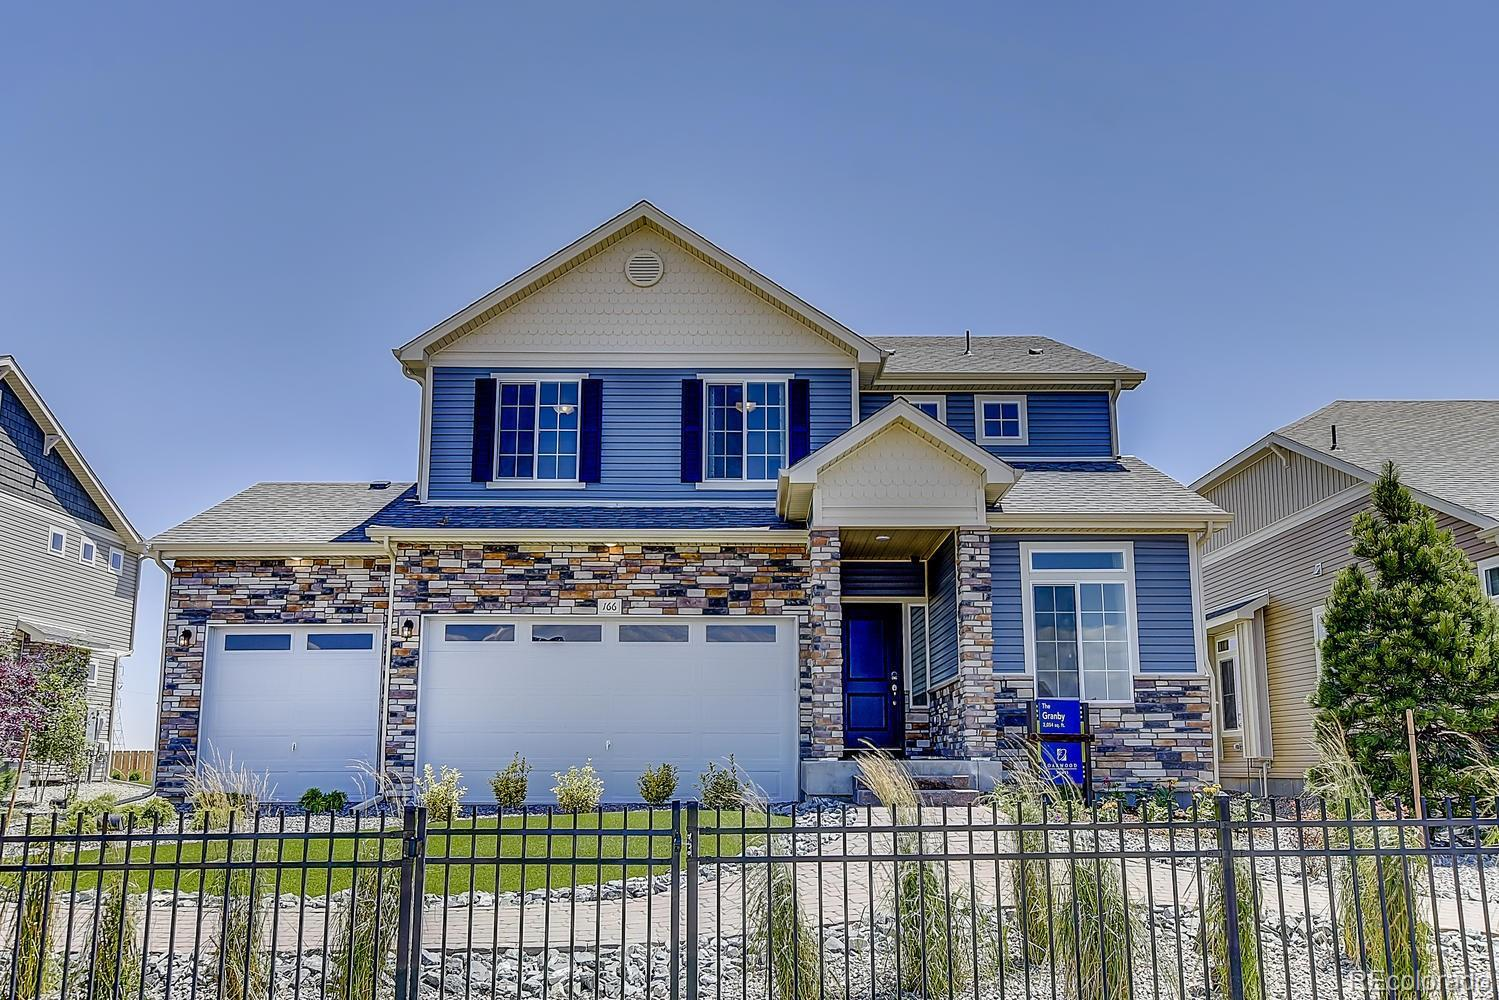 166 S New Castle Way, Aurora, CO 80018 - #: 1682339